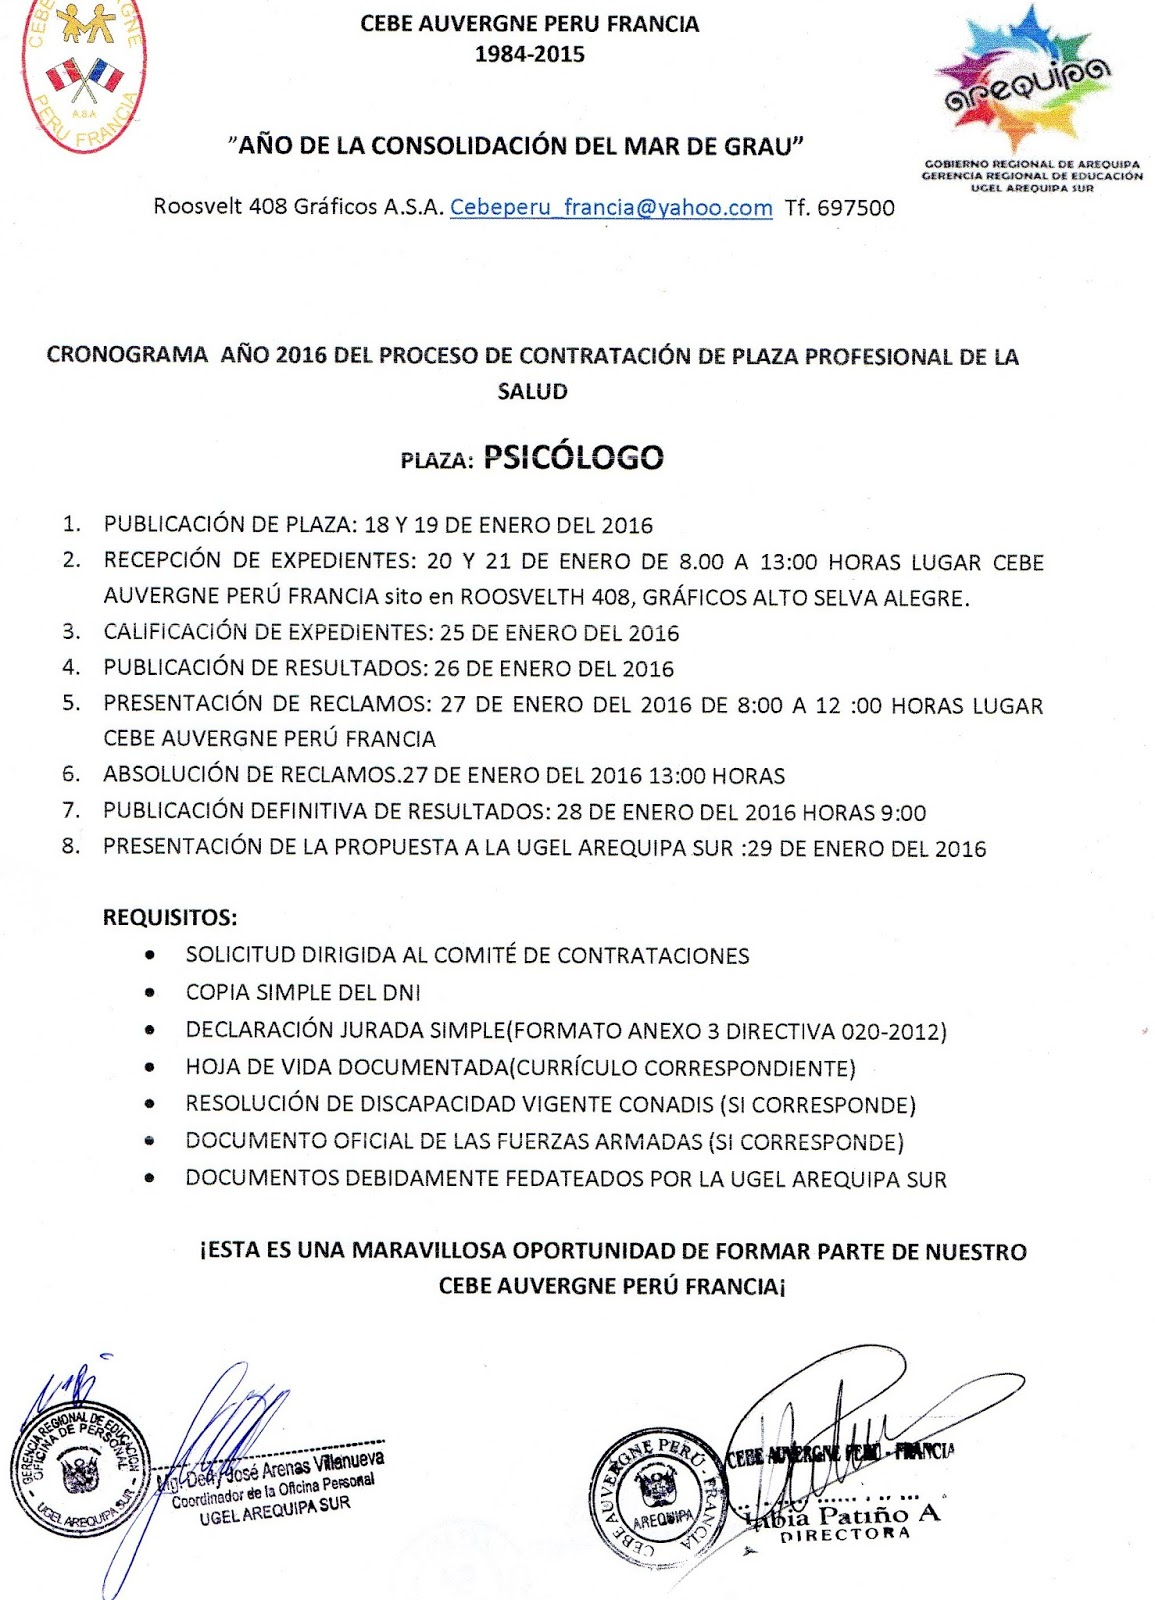 Contrato 2016 plaza de psic logo noticias m s for Convocatoria de plazas docentes 2016